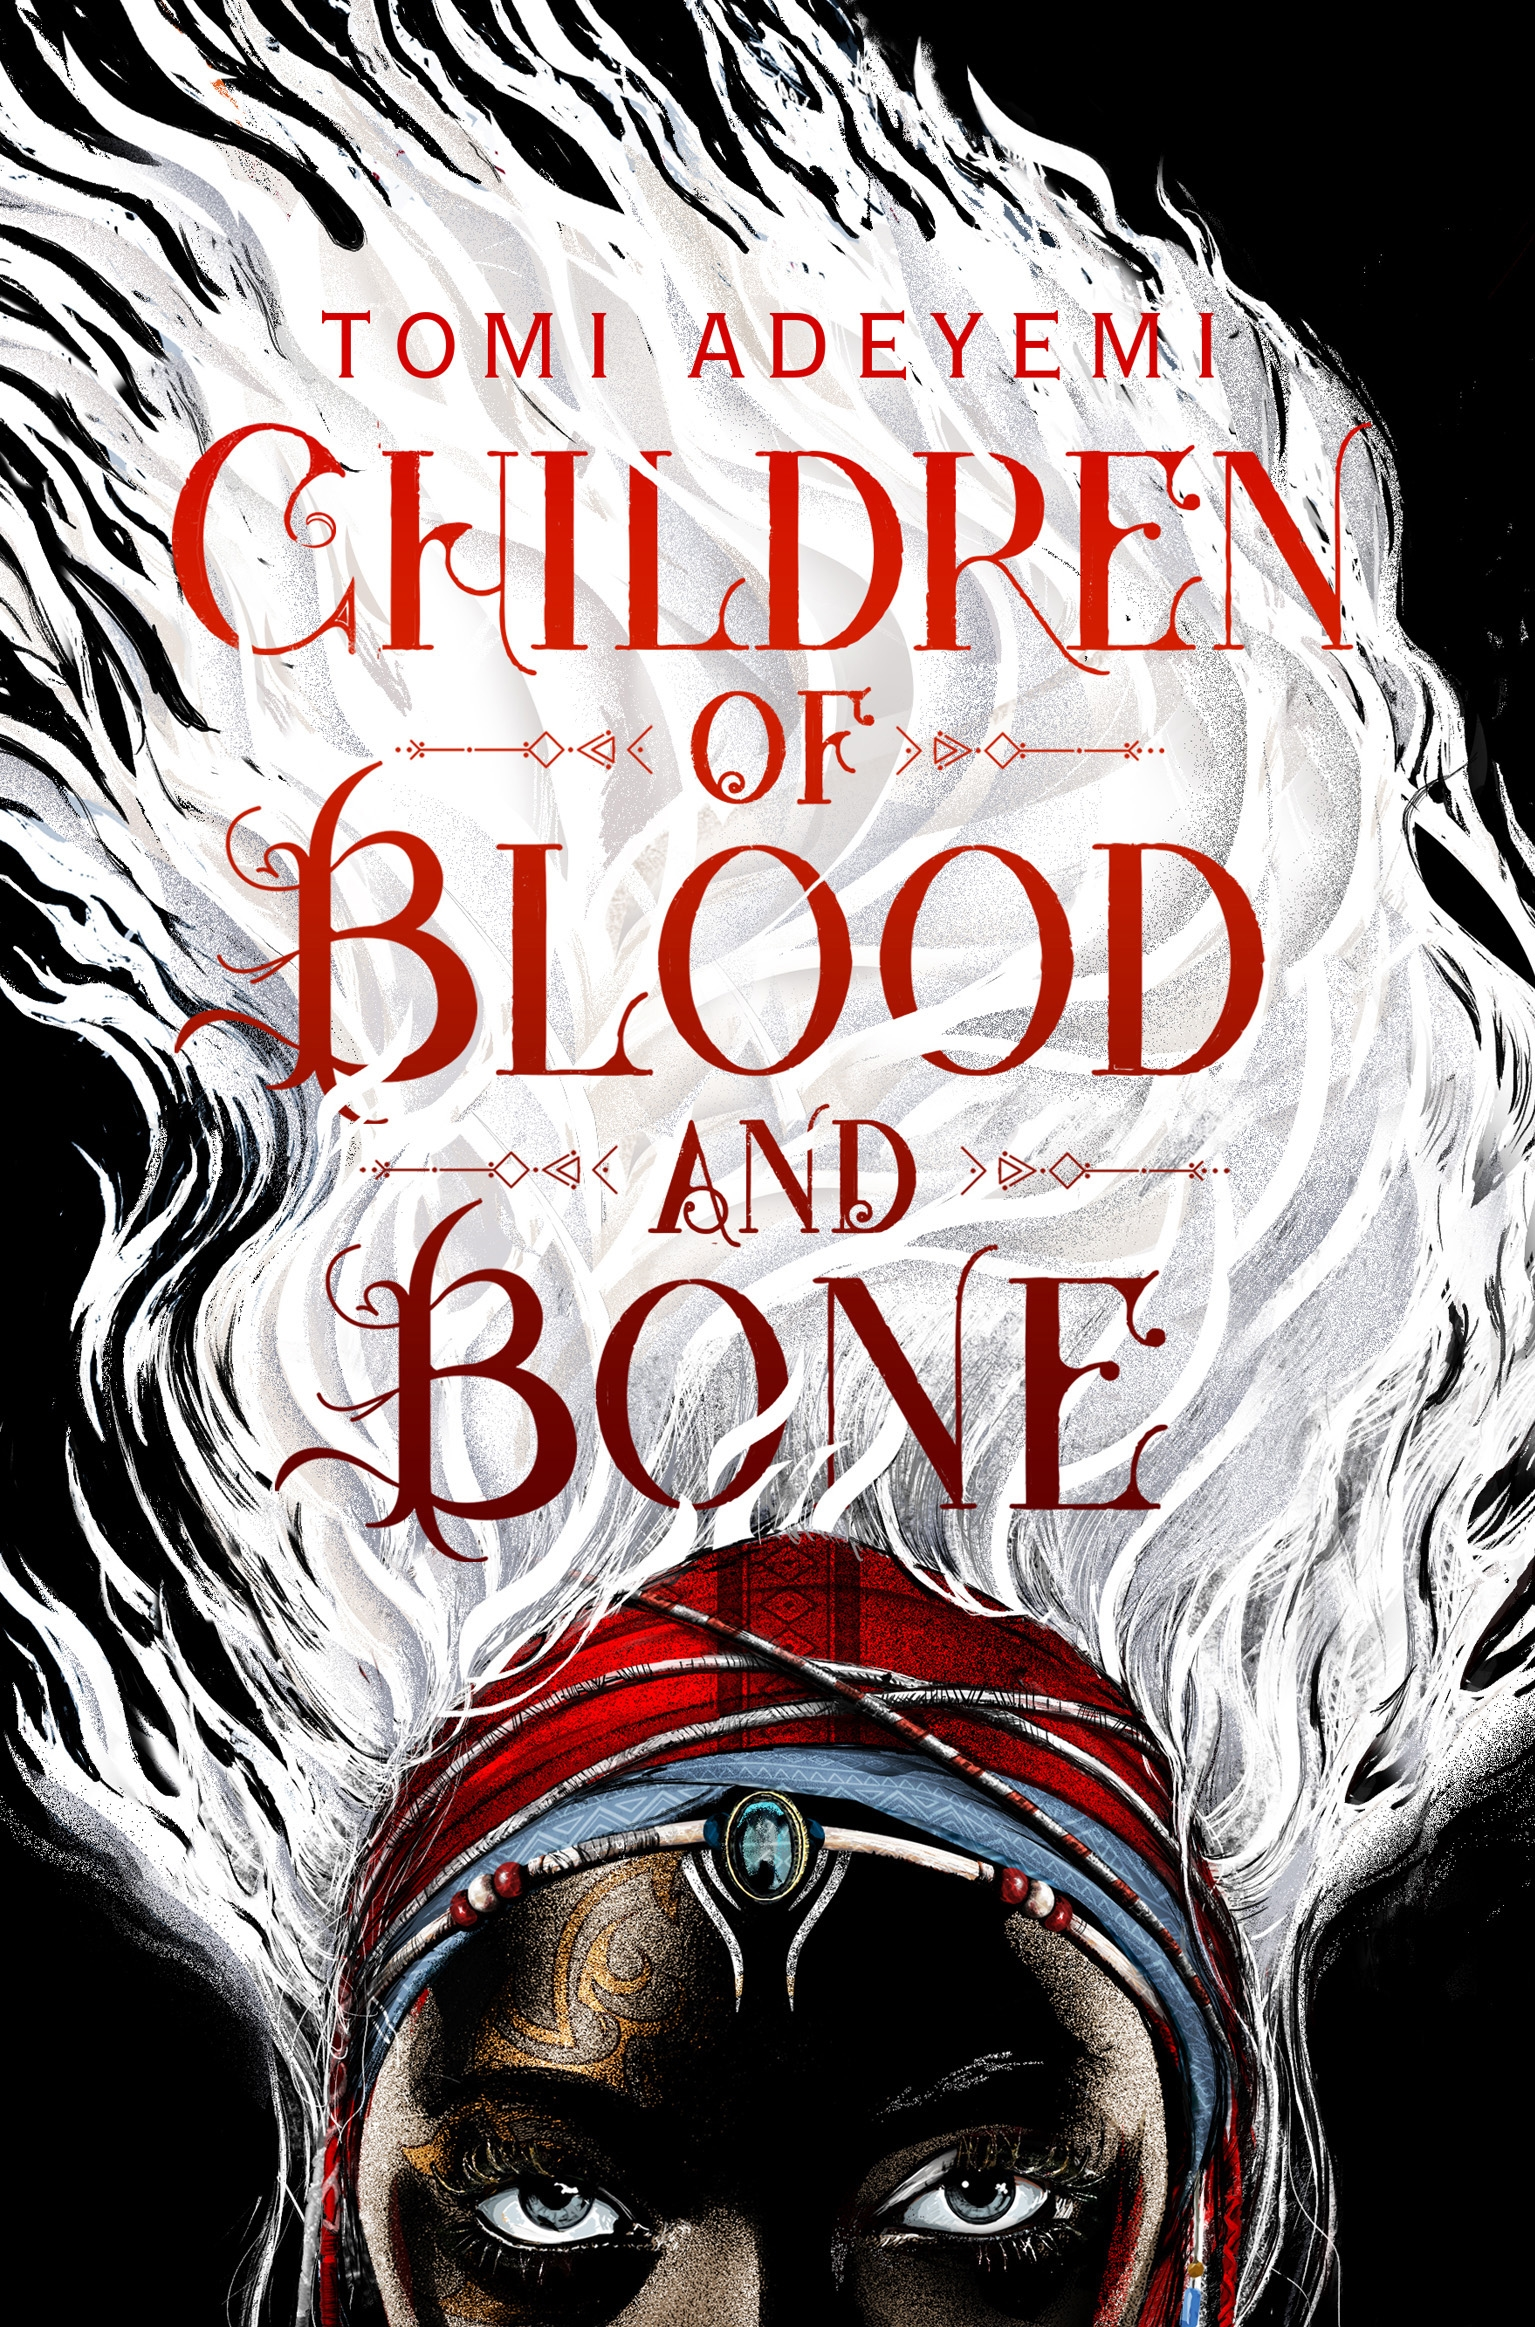 The Children Of Blood And Bone by Tomi Adeyemi